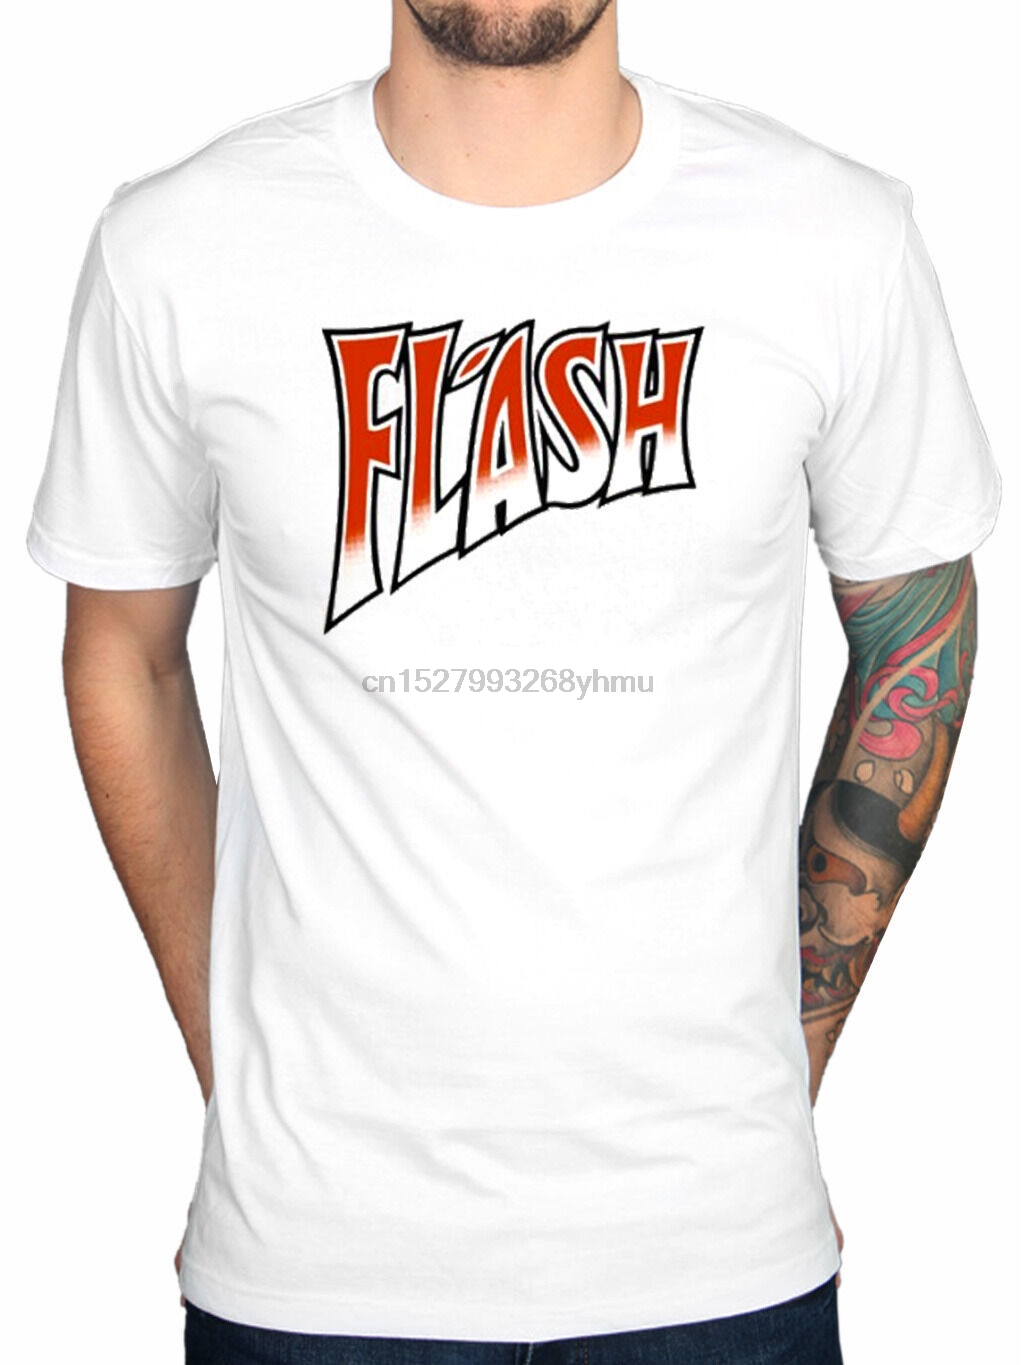 Official Queen Flash Gordon T-Shirt Flash Gordon Live Killers The Miracles(China)